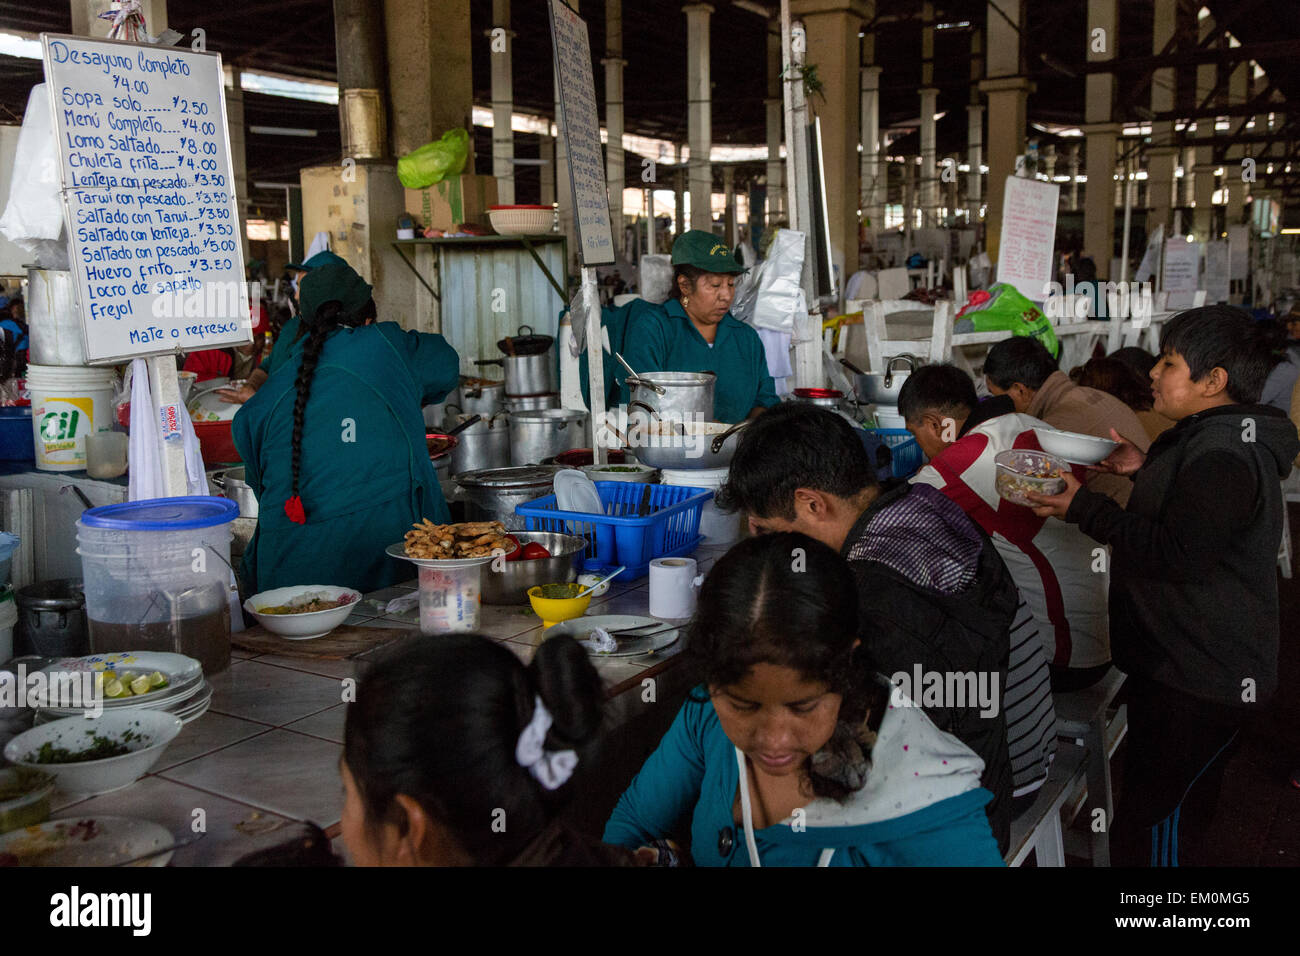 Peru, Cusco, San Pedro Market.  Customers Eating in the Food Court Area of the Market. - Stock Image